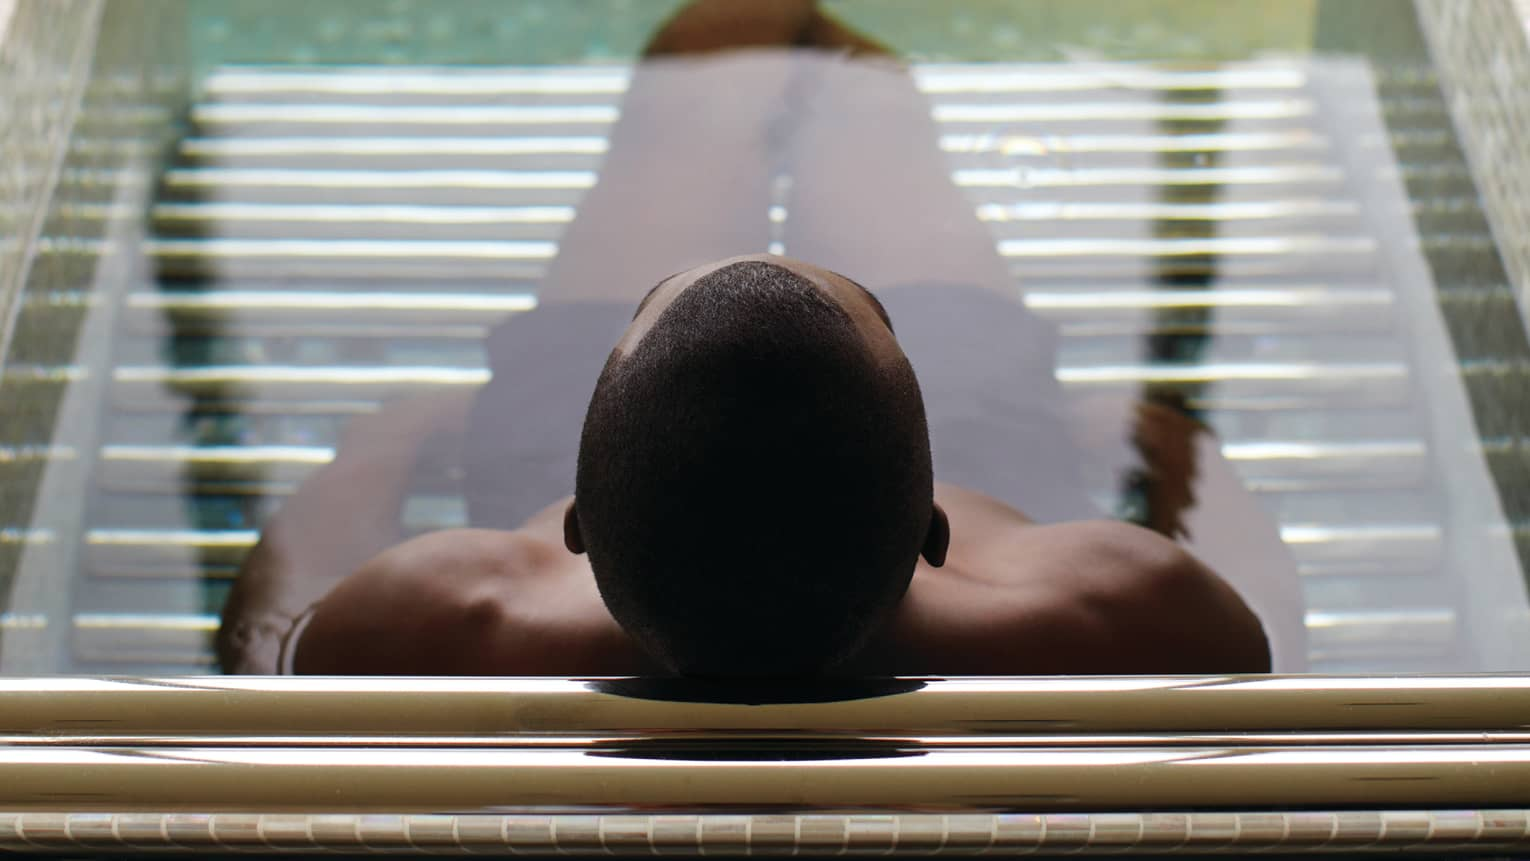 Silhouette of back of man's head, legs in spa tub